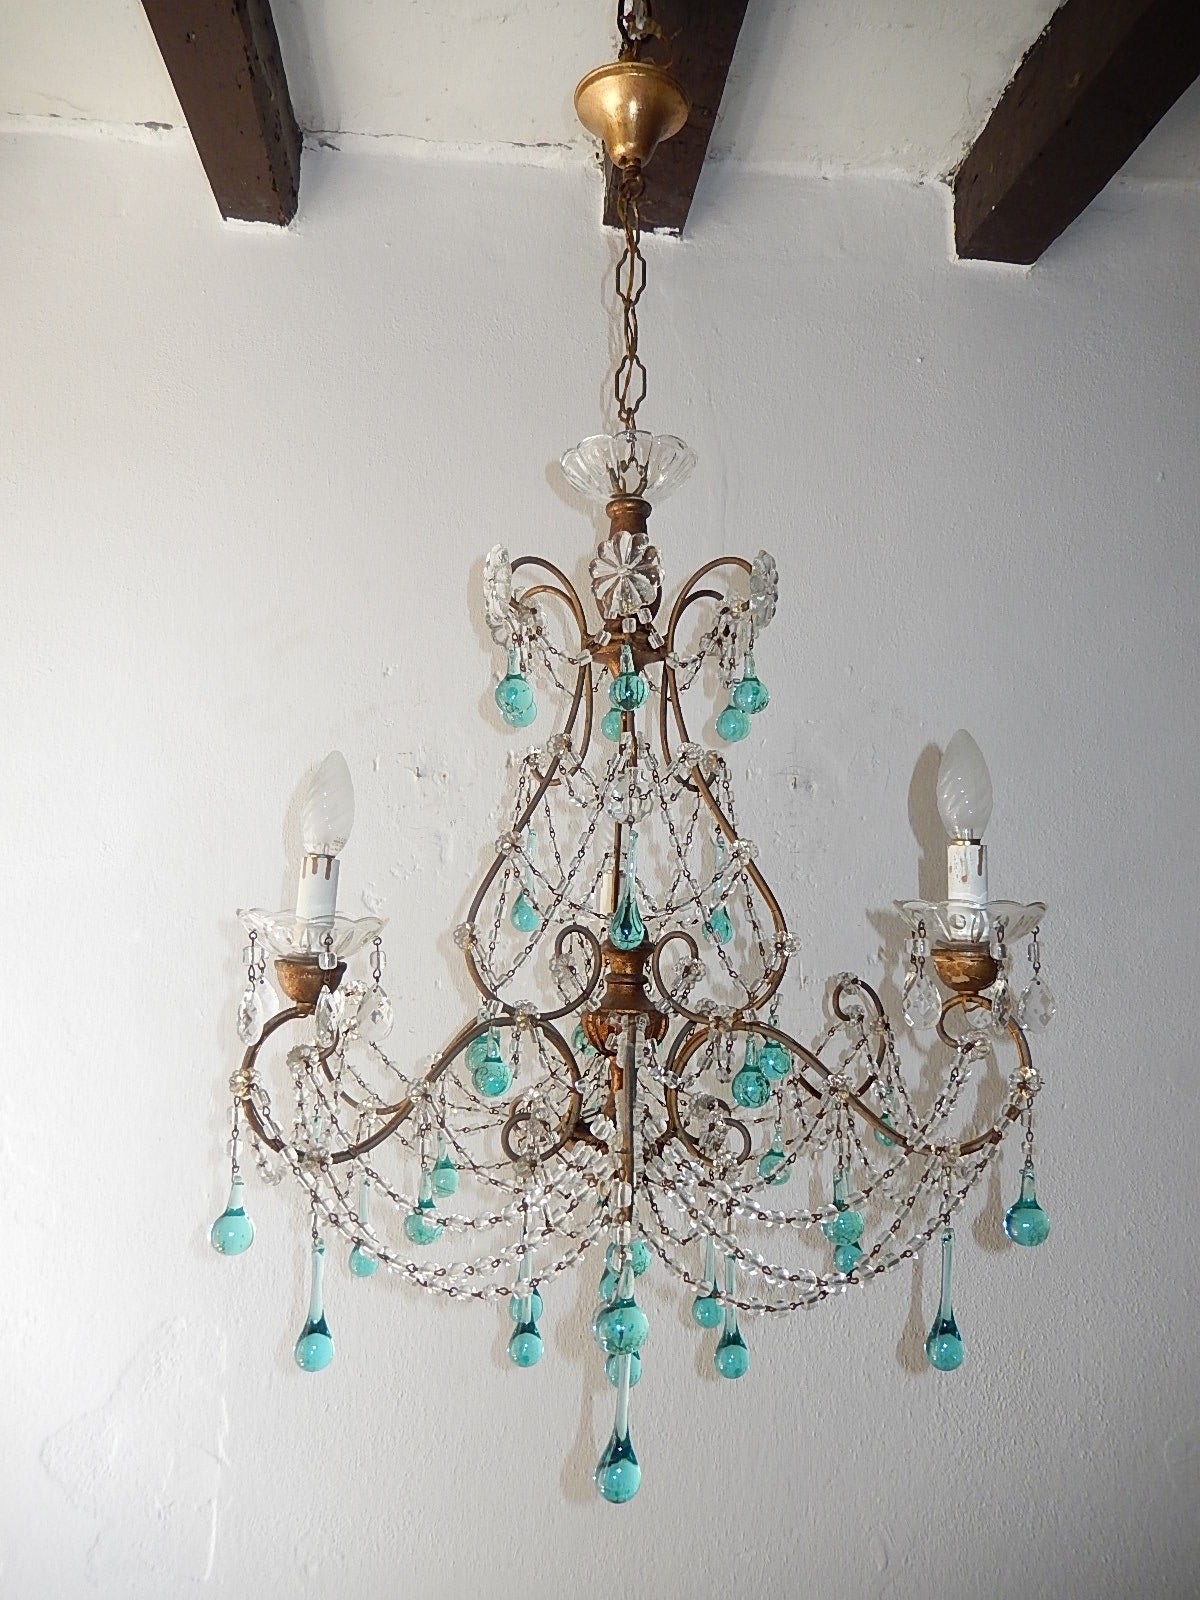 French Aqua Blue Balls and Drops Crystal Chandelier circa 1920 at